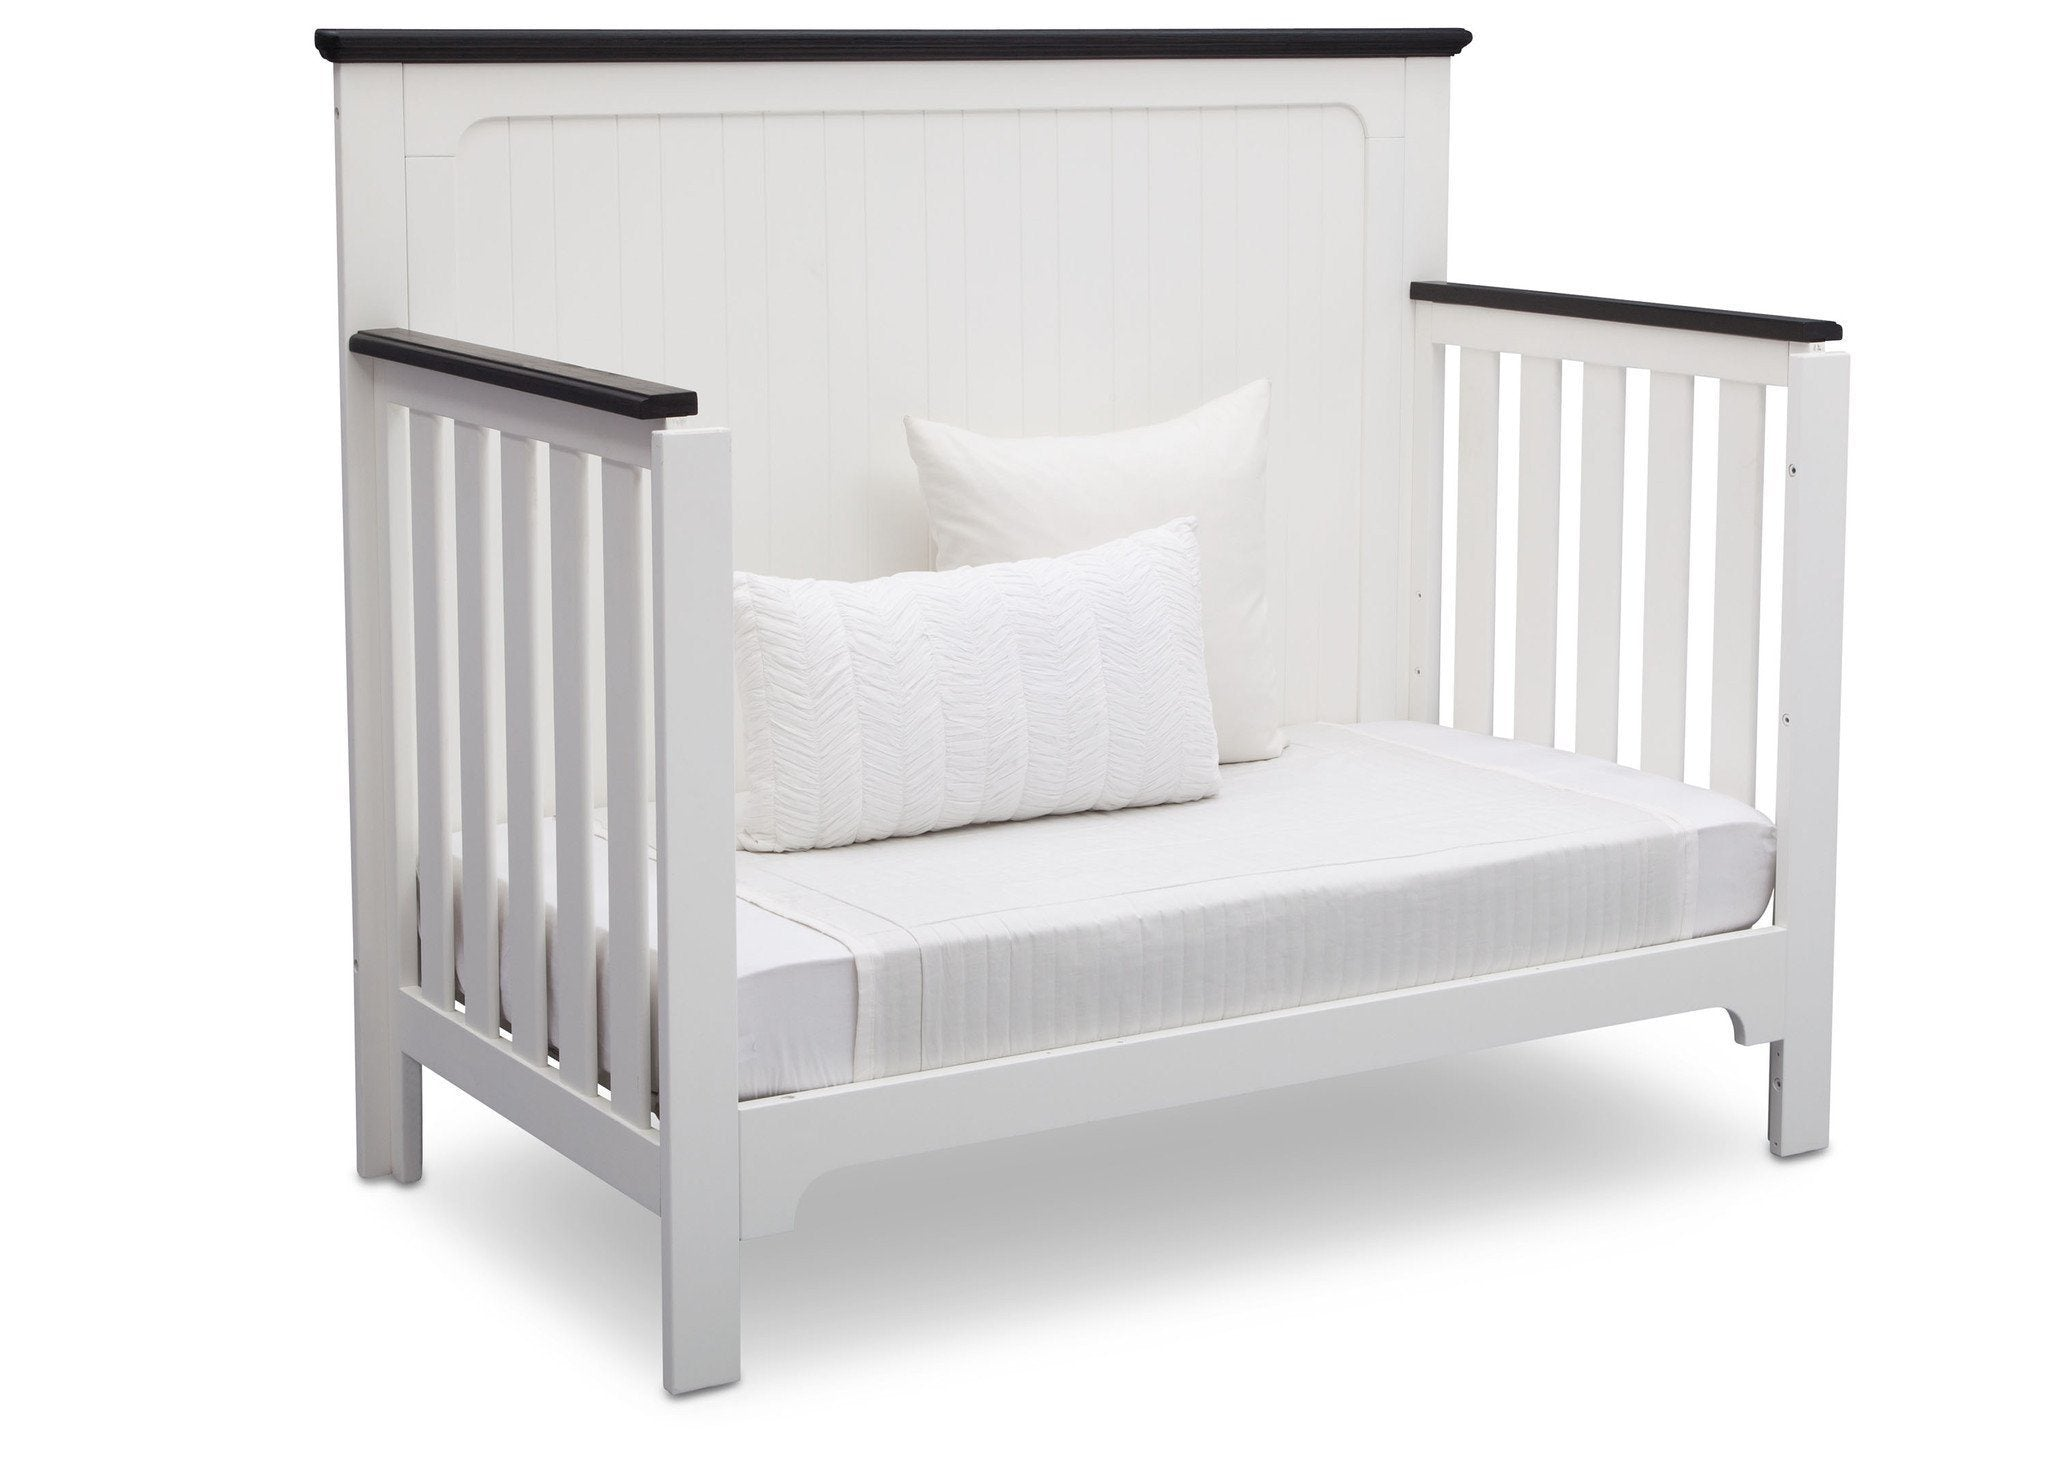 Delta Children Bianca with Rustic Ebony (135) Providence 4-in-1 Crib, Daybed Conversion a6a